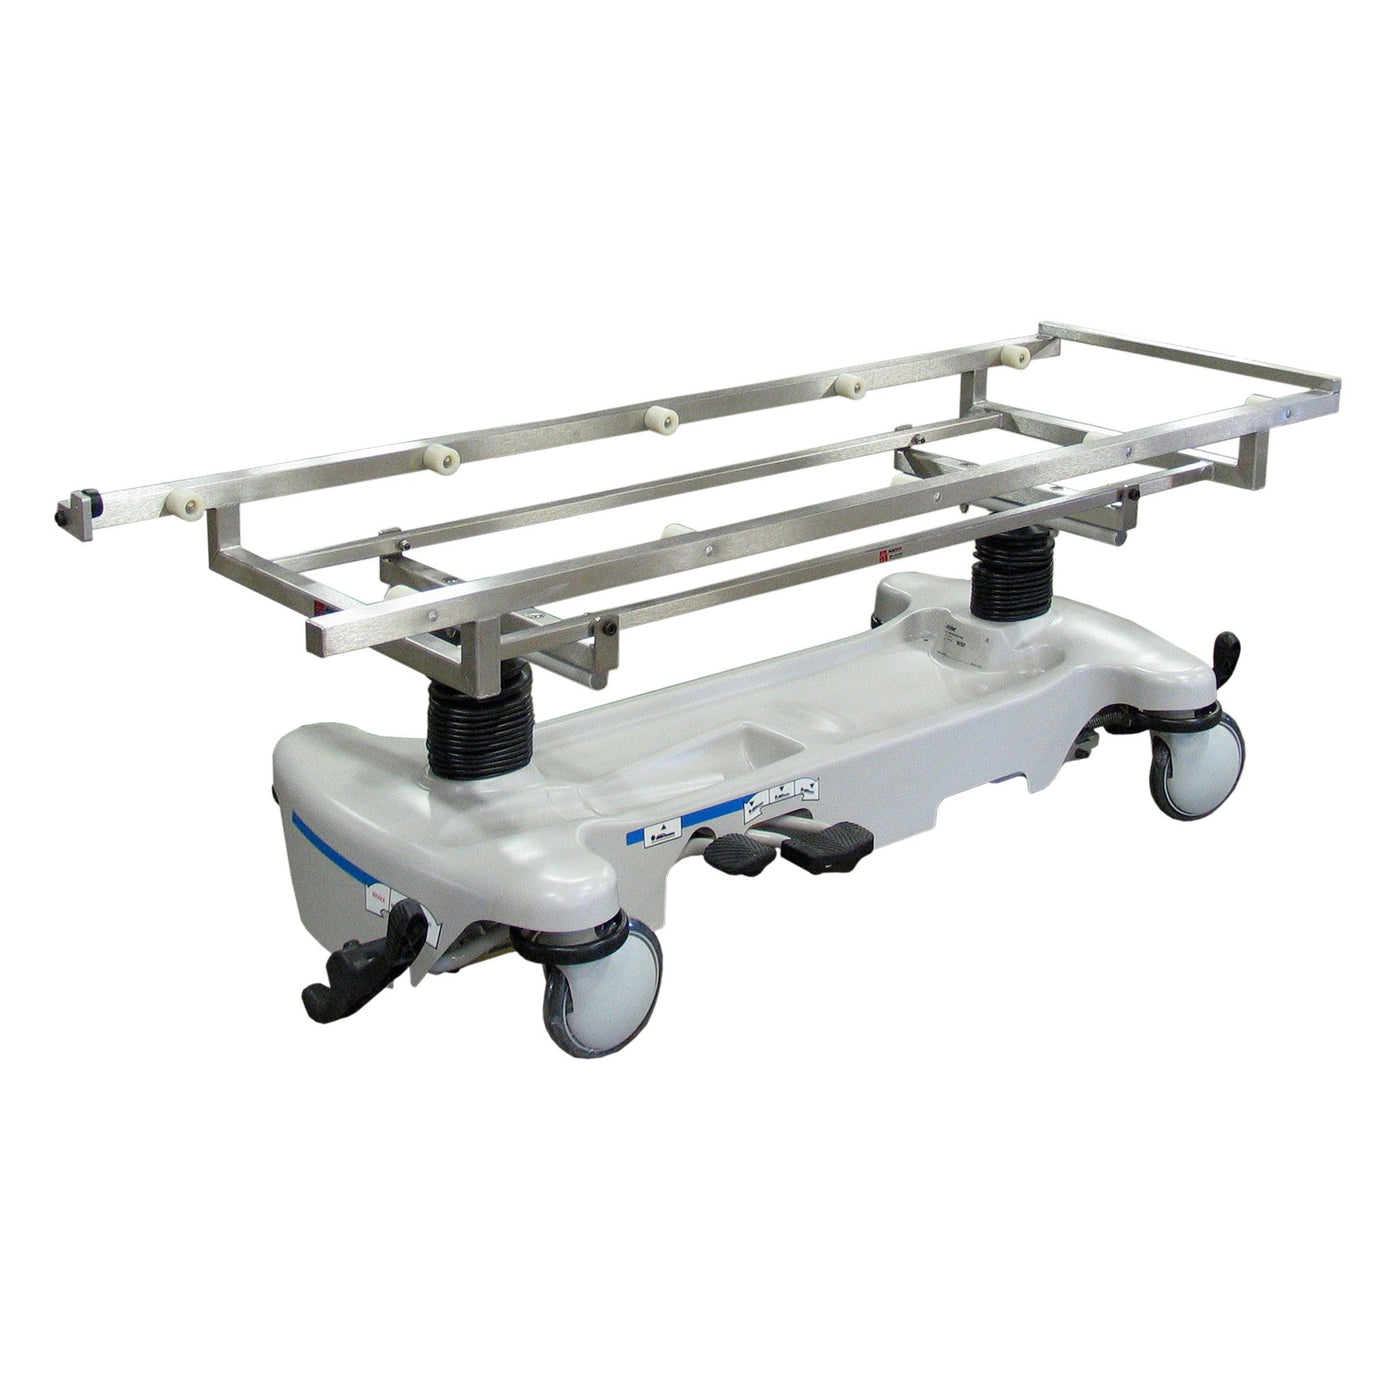 Autopsy Carrier w/ Rollers-Body Transporter-Mortech Manufacturing Company Inc. Quality Stainless Steel Autopsy, Morgue, Funeral Home, Necropsy, Veterinary / Anatomy, Dissection Equipment and Accessories